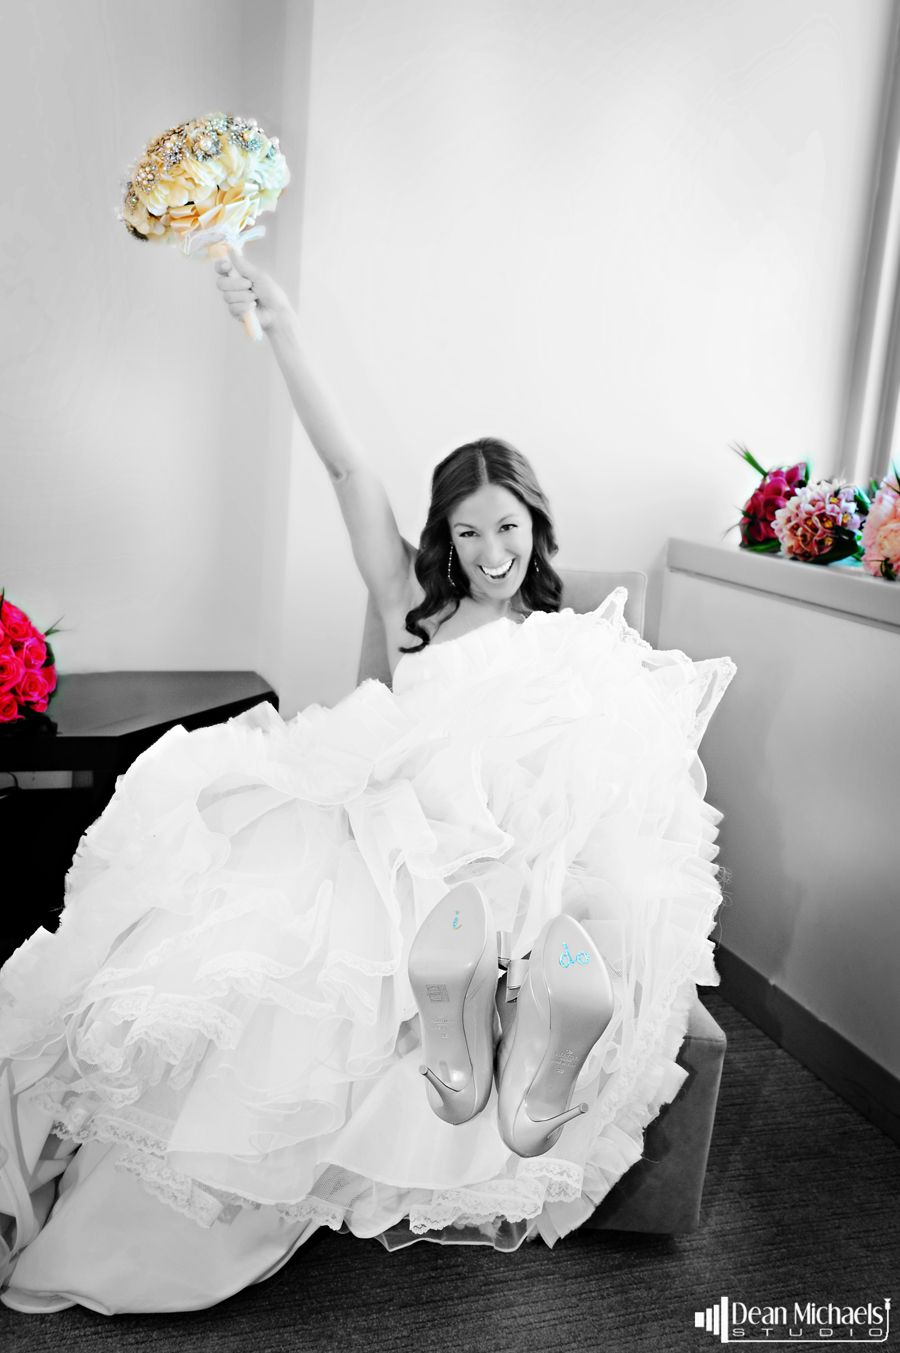 Dana & Andrew's June #Wedding 2012 - Round 4 Winners of the Dean Michaels Studios Best of #Weddings Facebook Competition! (Photo by: Dean Michaels Studio - www.deanmichaelstudio.com) #wedding #photography @Dana Curtis Curtis